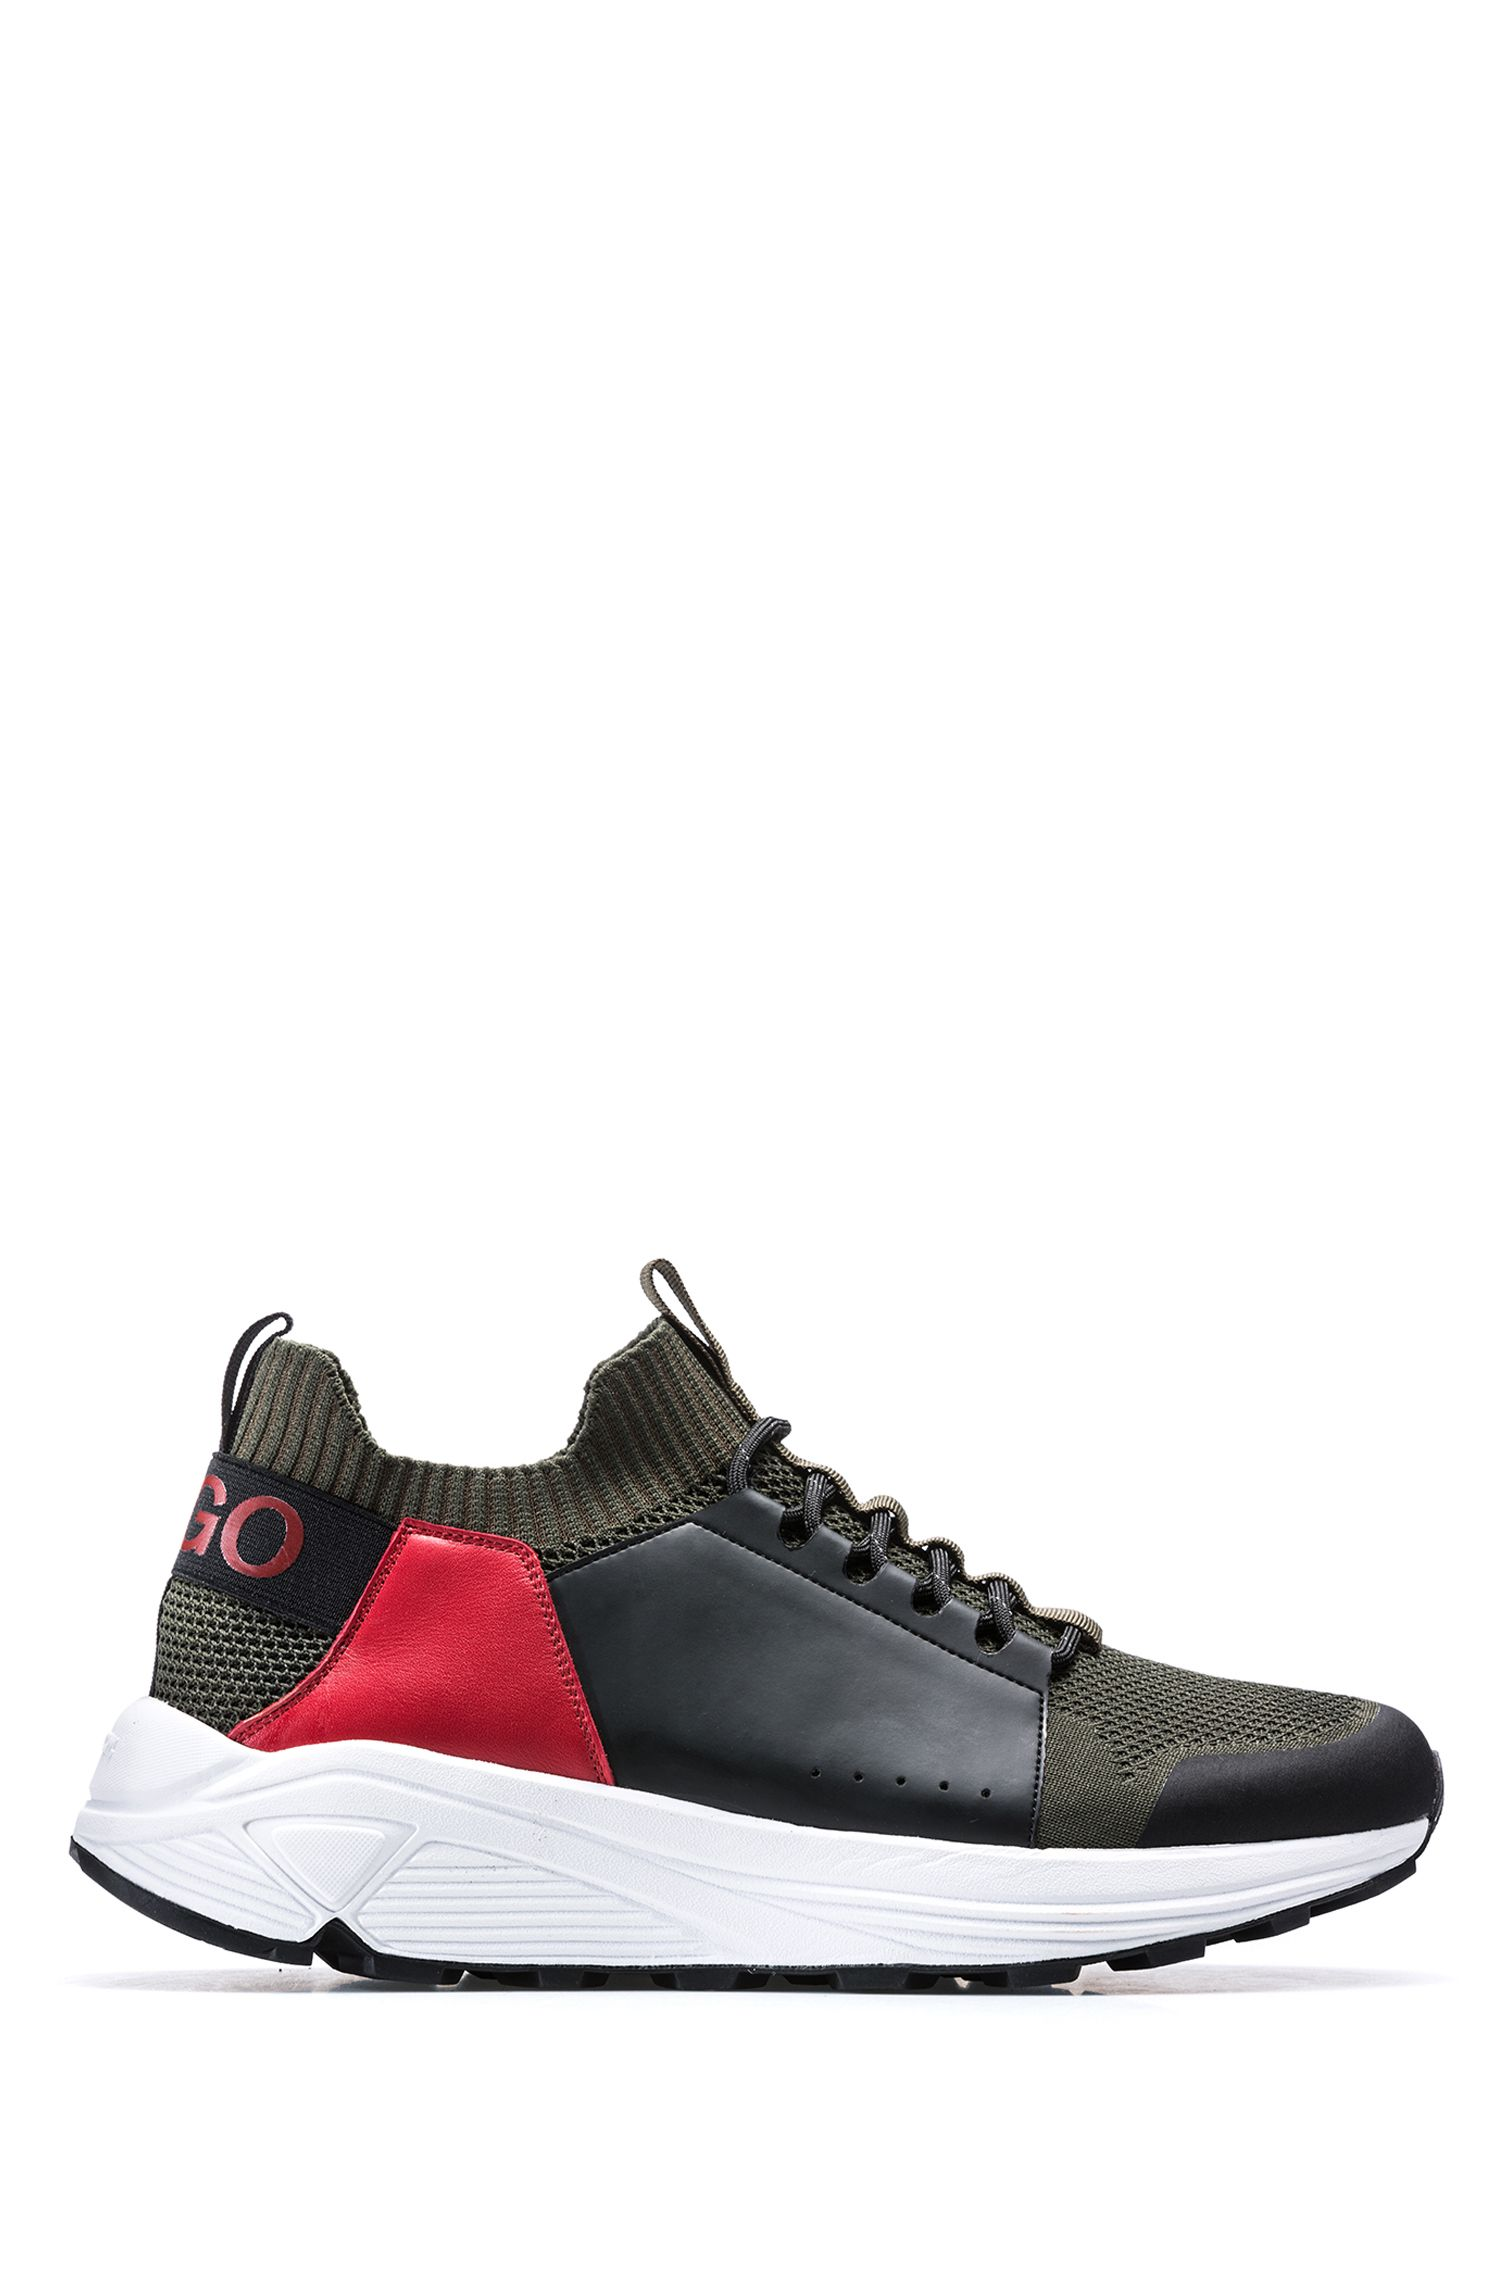 Modern lace-up sneakers with thick Vibram sole, Open Green